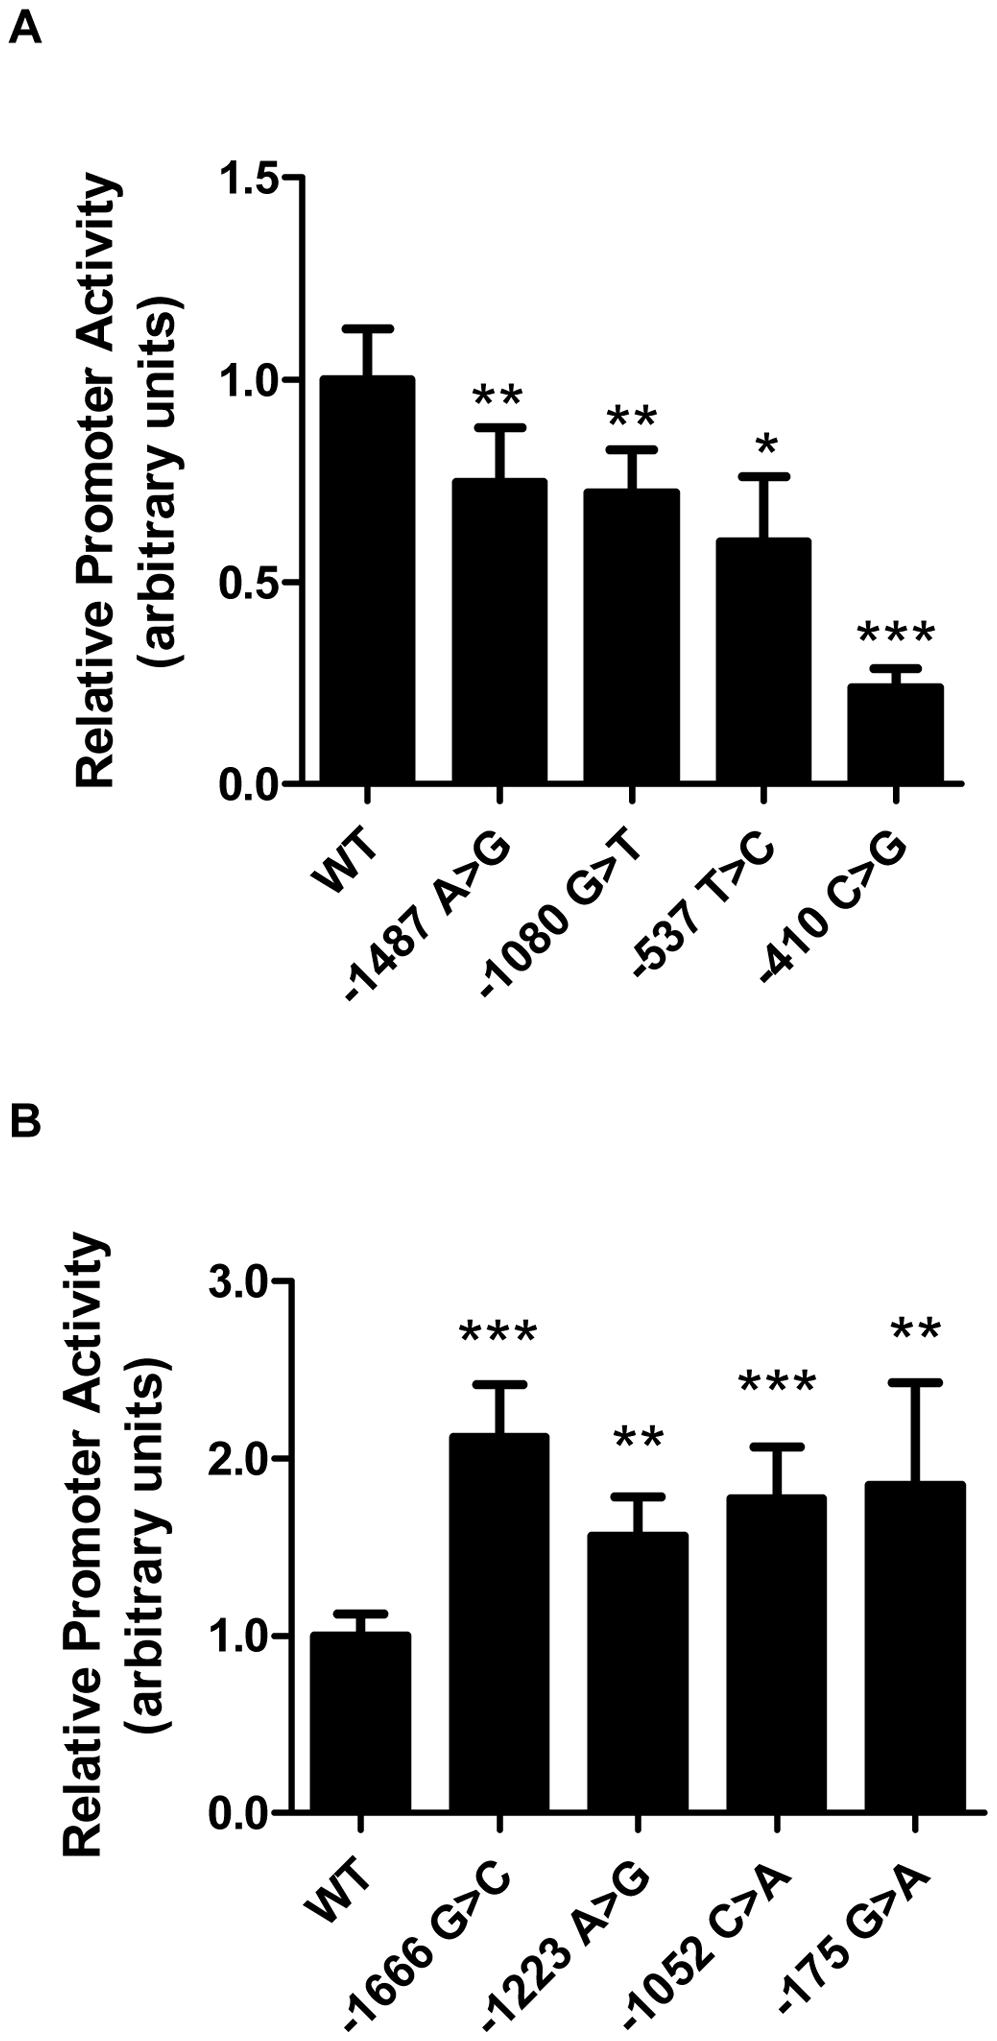 Rare <i>LIPG</i> regulatory variants modulate transcriptional activity <i>in vitro</i>.